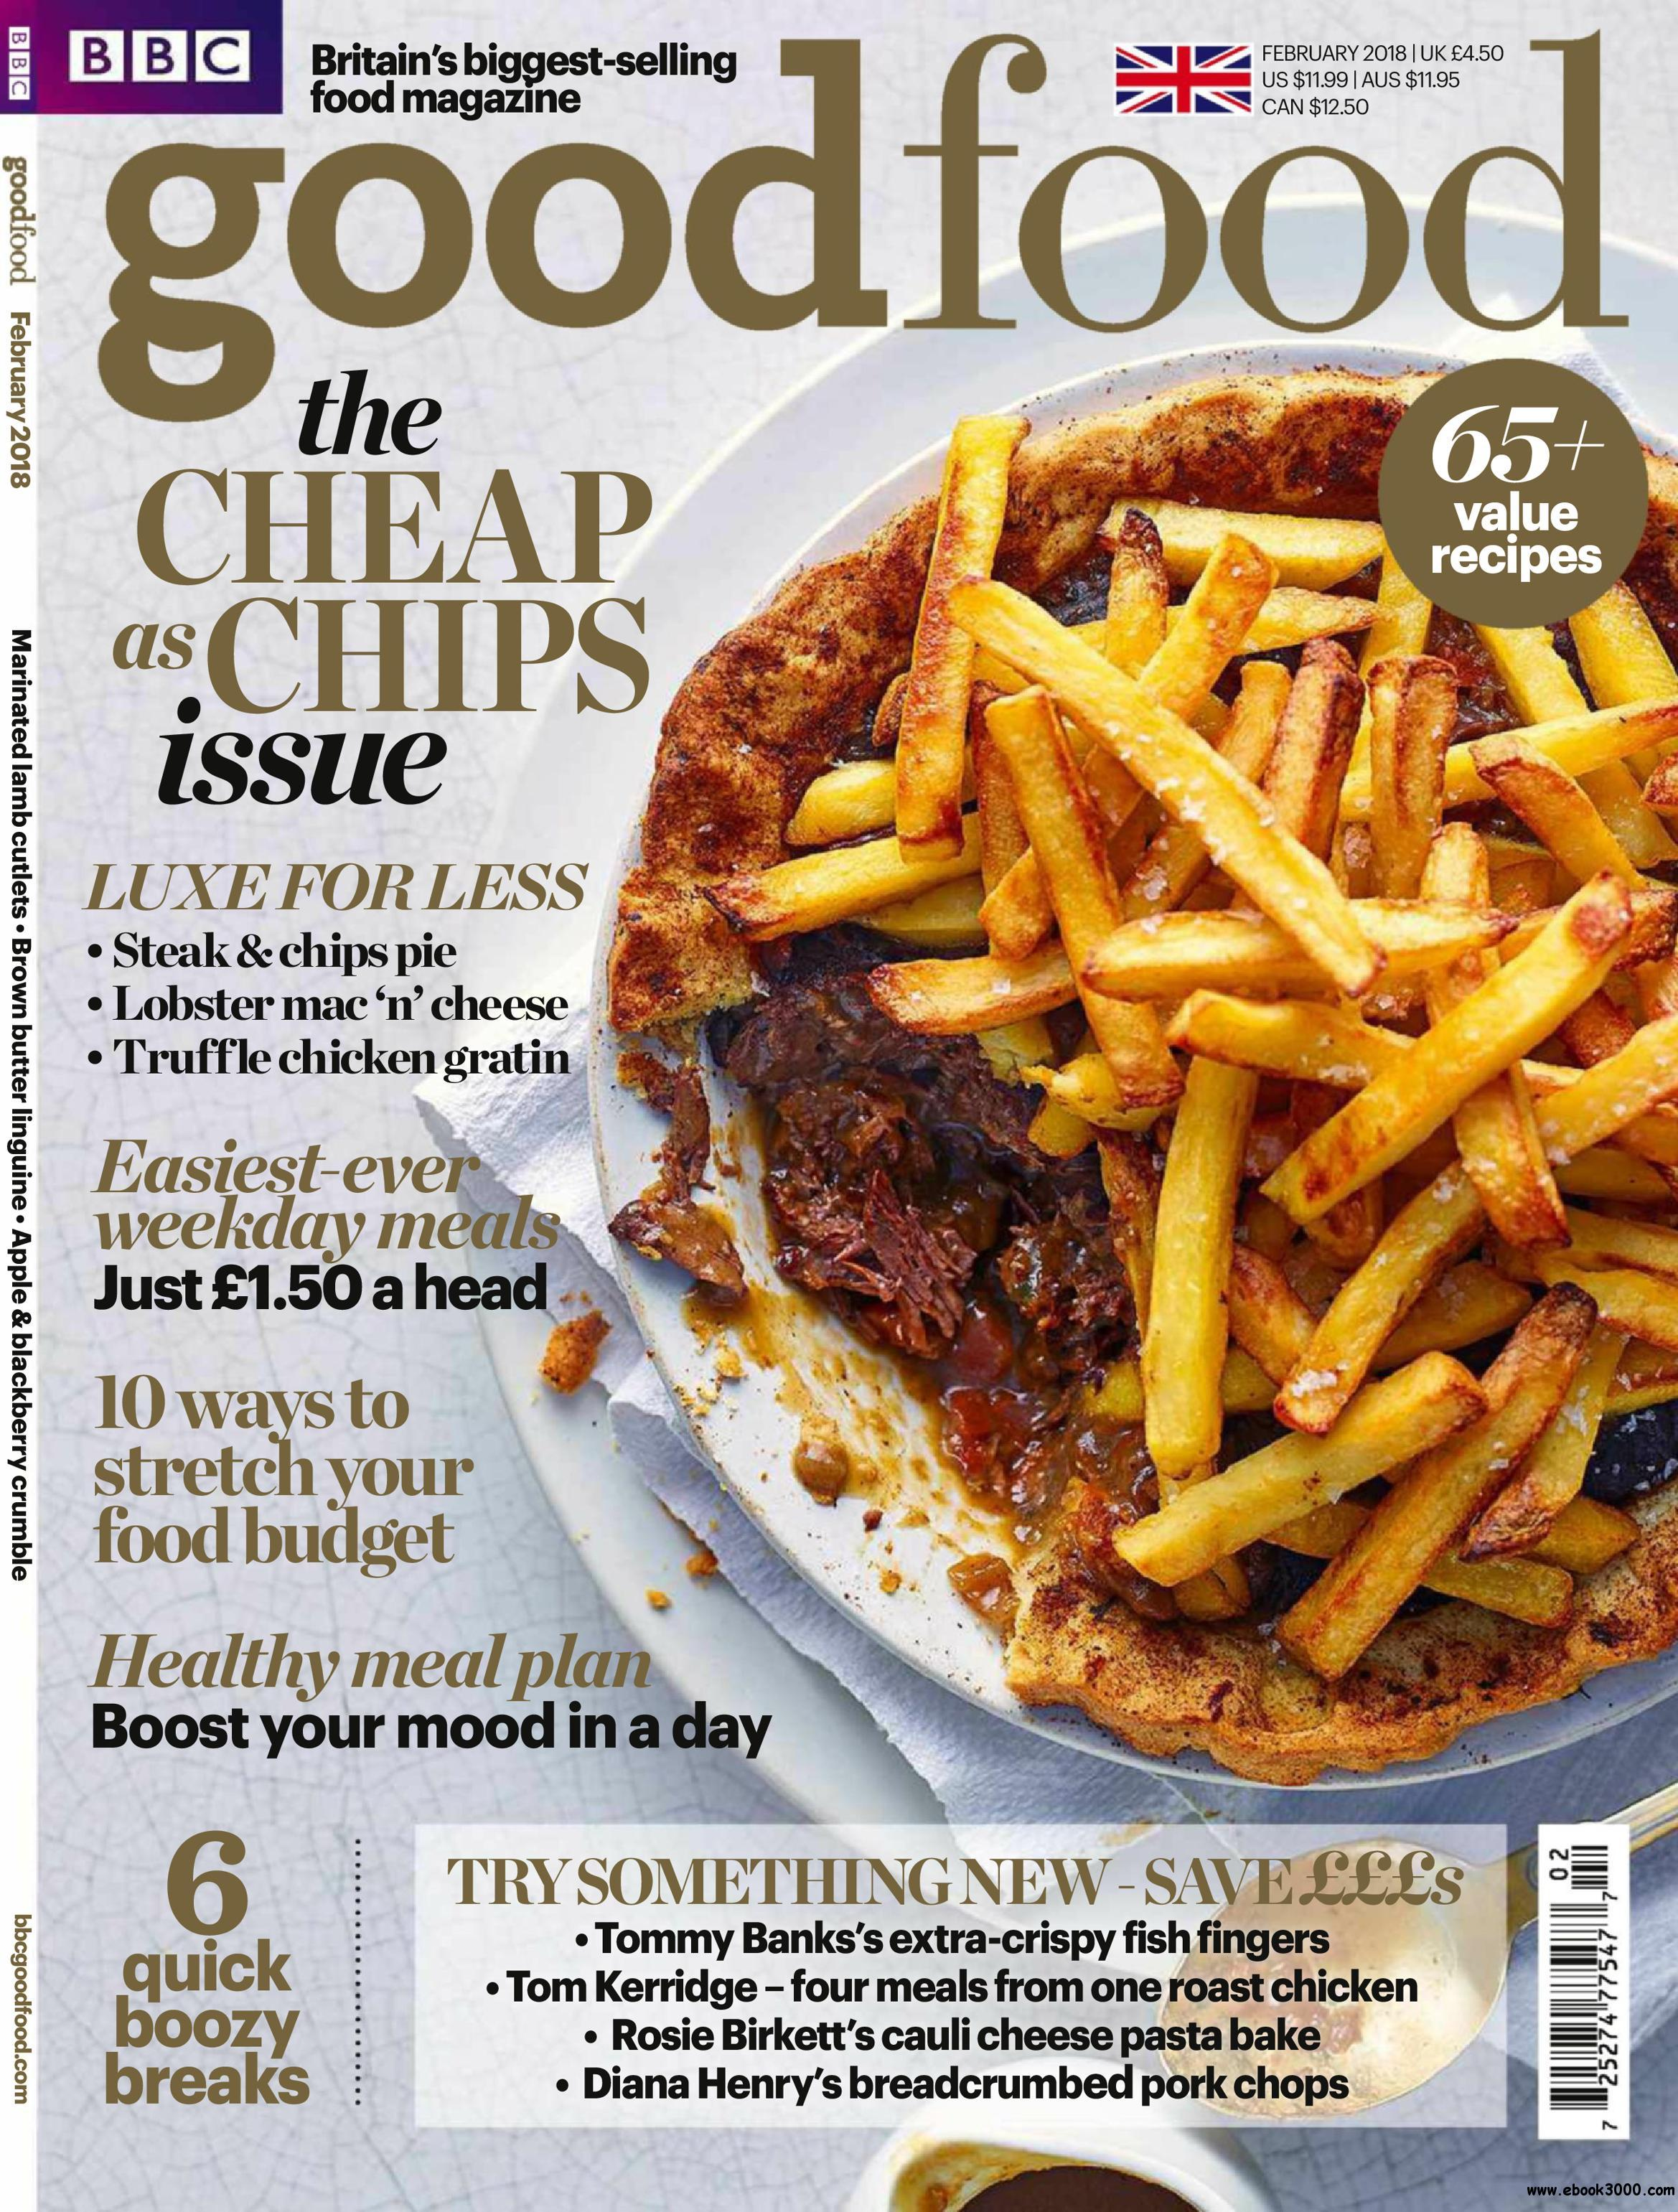 Bbc good food uk march 2018 free ebooks download bbc good food uk march 2018 forumfinder Choice Image